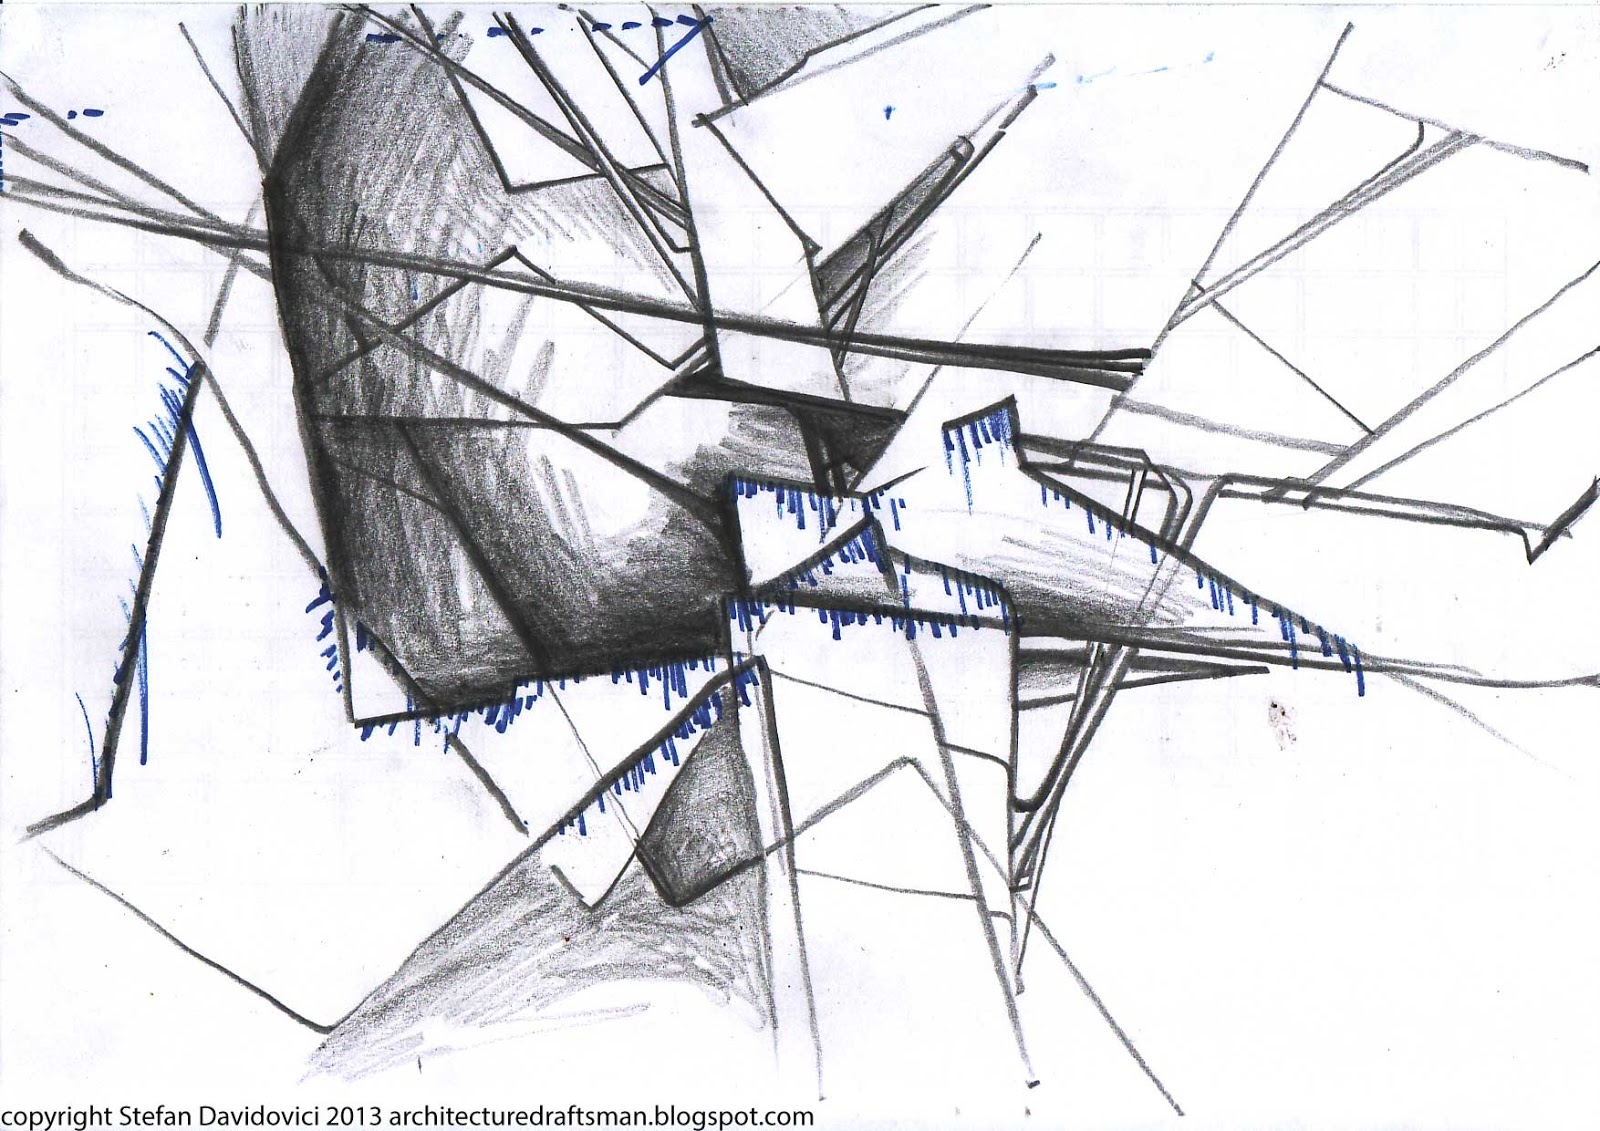 The Architecture Draftsman ABSTRACT ARCHITECTURE